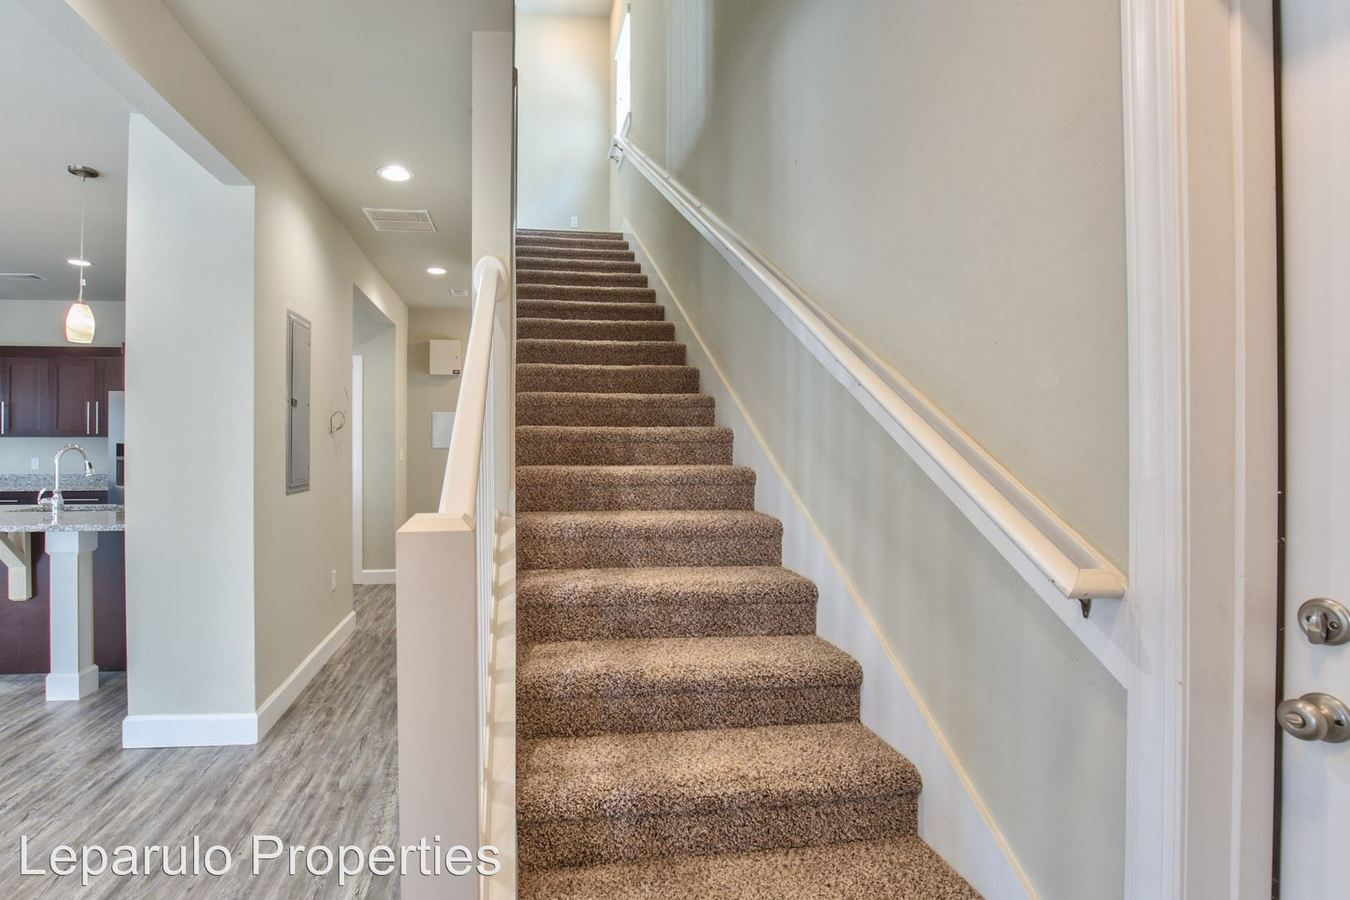 1 Bedroom 1 Bathroom Apartment for rent at #101 in Tallahassee, FL